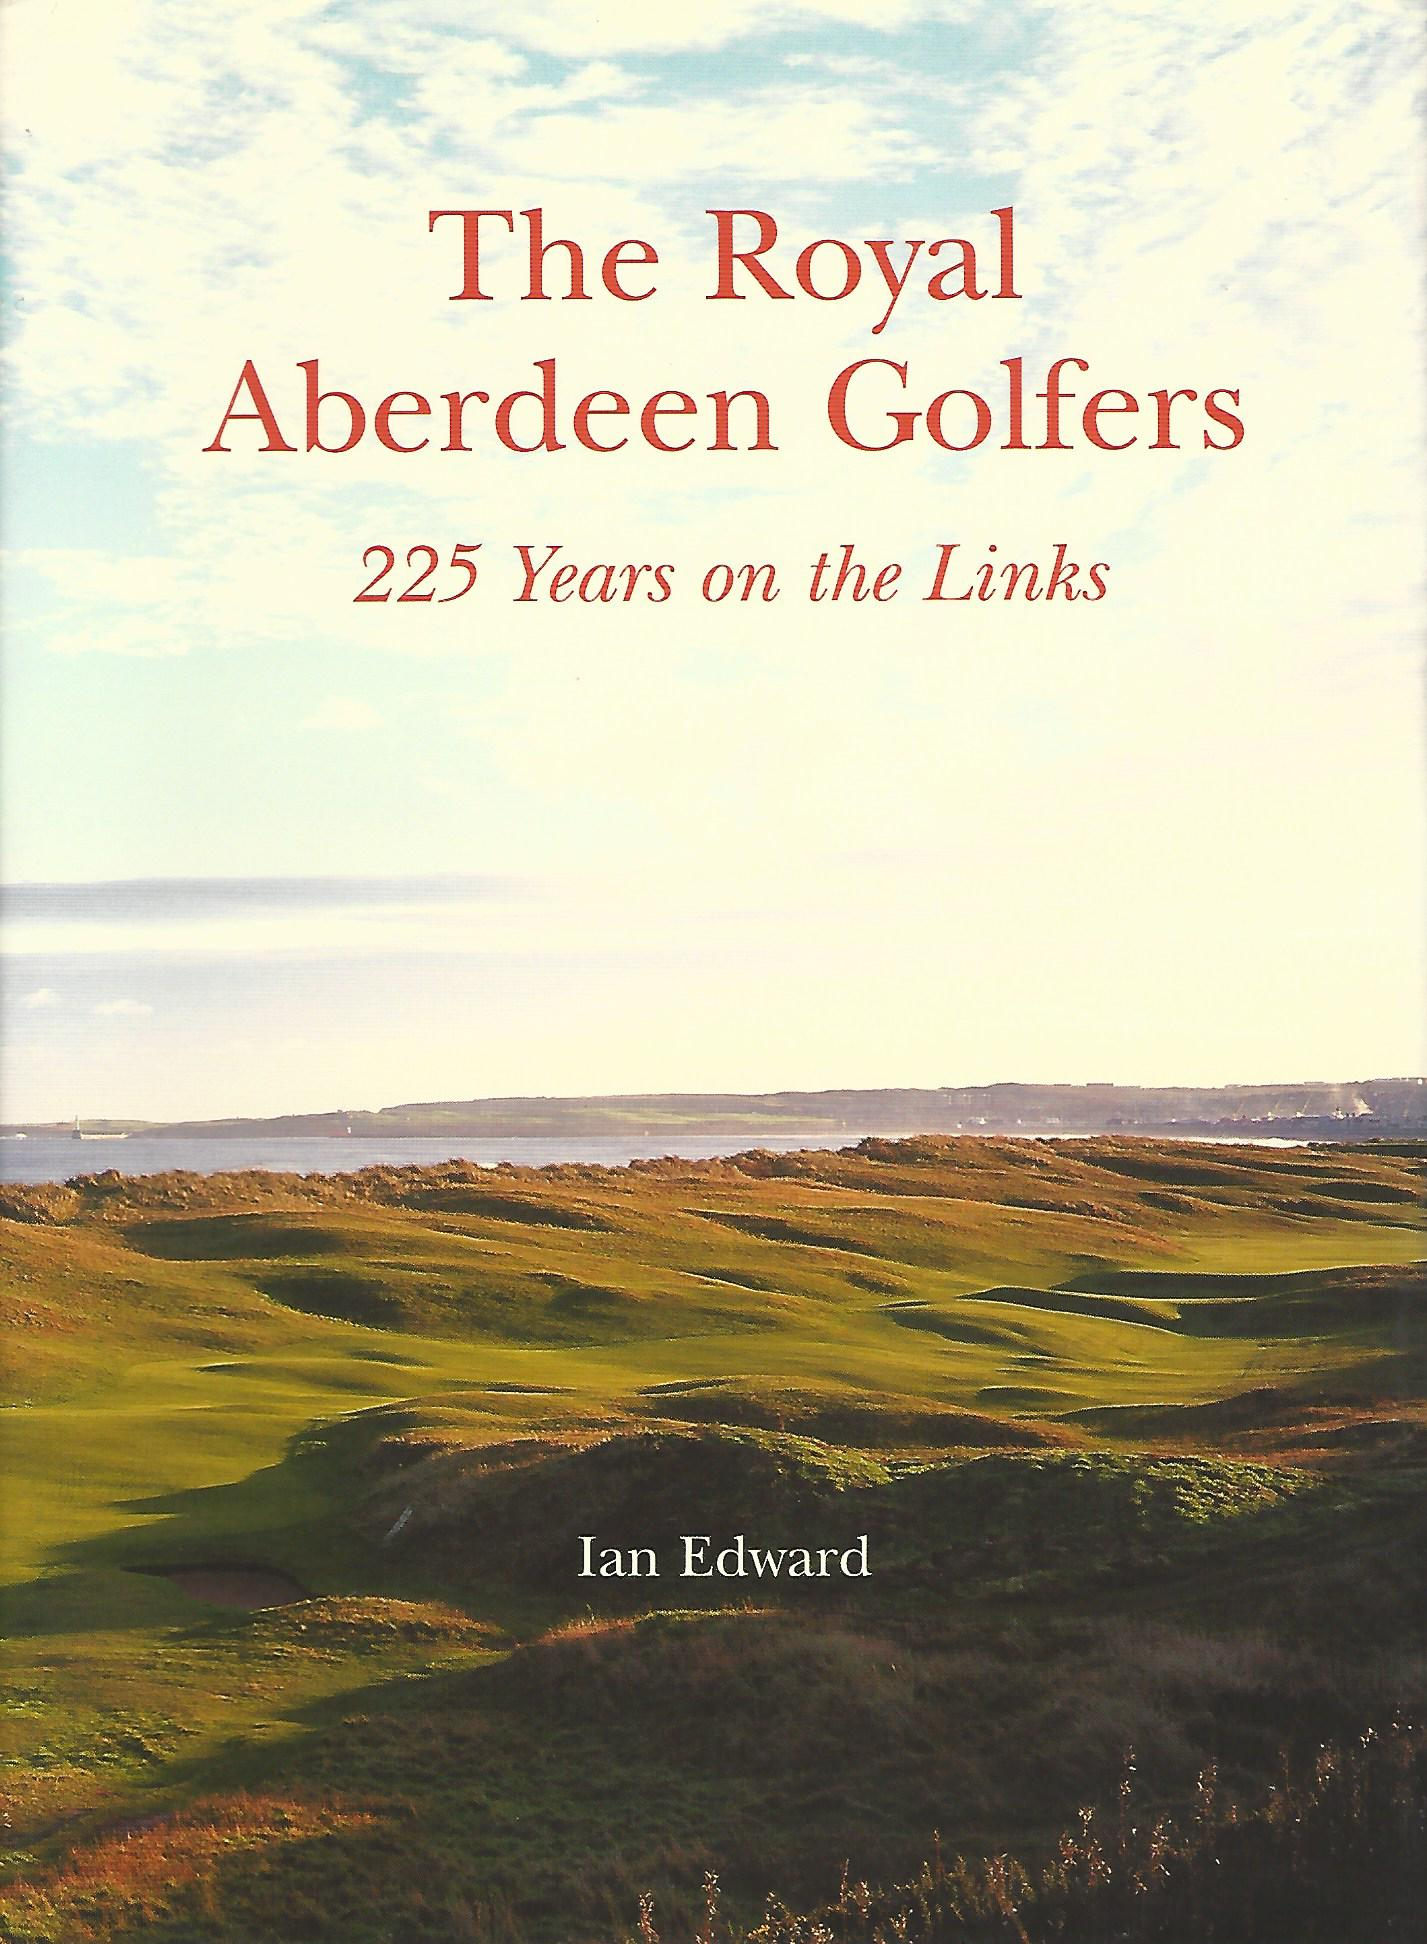 Image for The Royal Aberdeen Golfers: 225 Years on the Links.